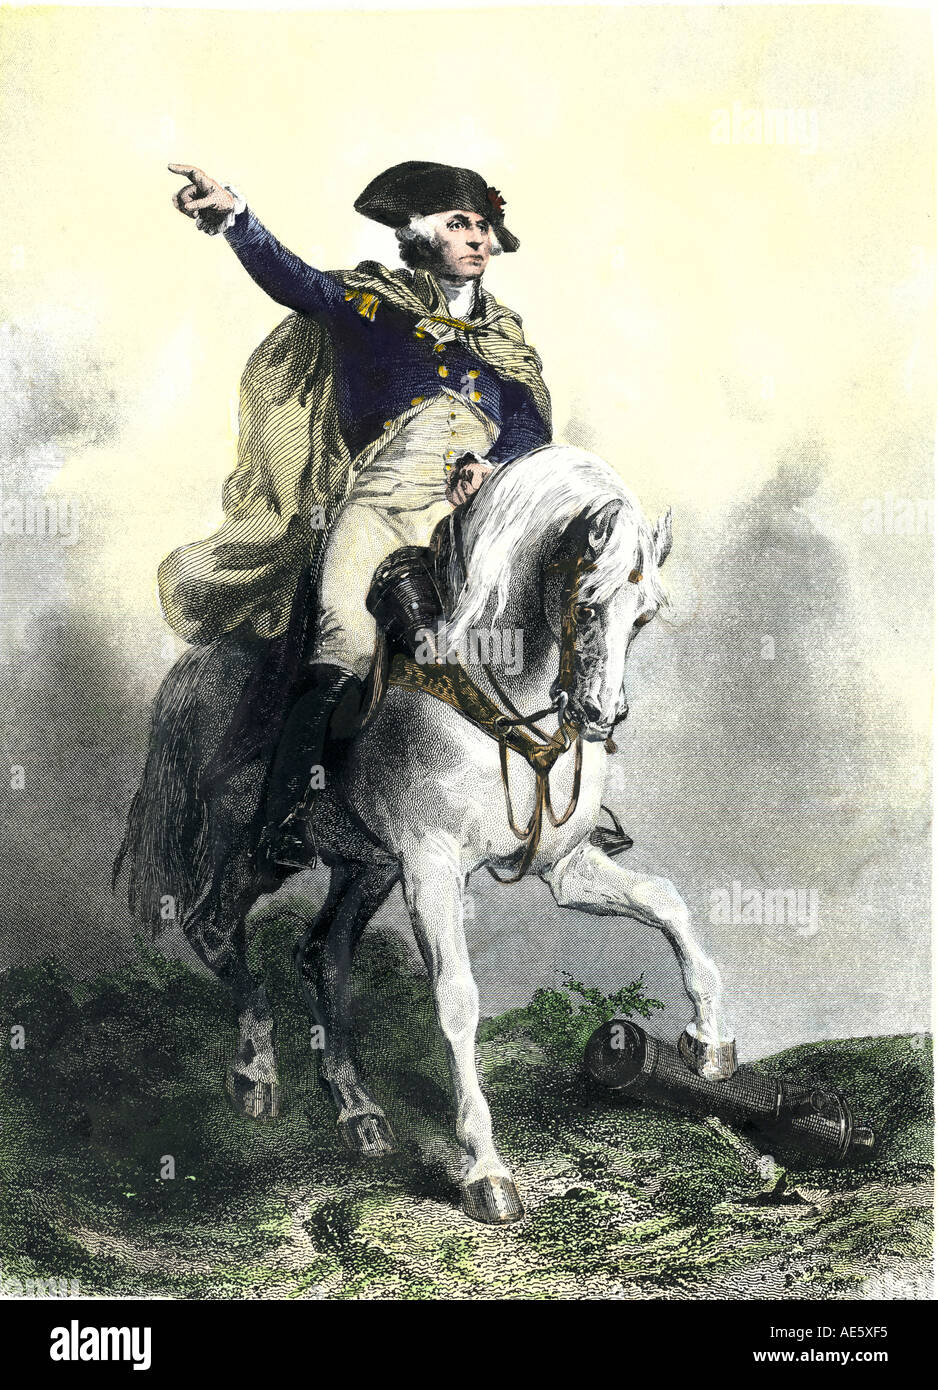 General George Washington in battlefield on a horse American Revolution. Hand-colored steel engraving - Stock Image